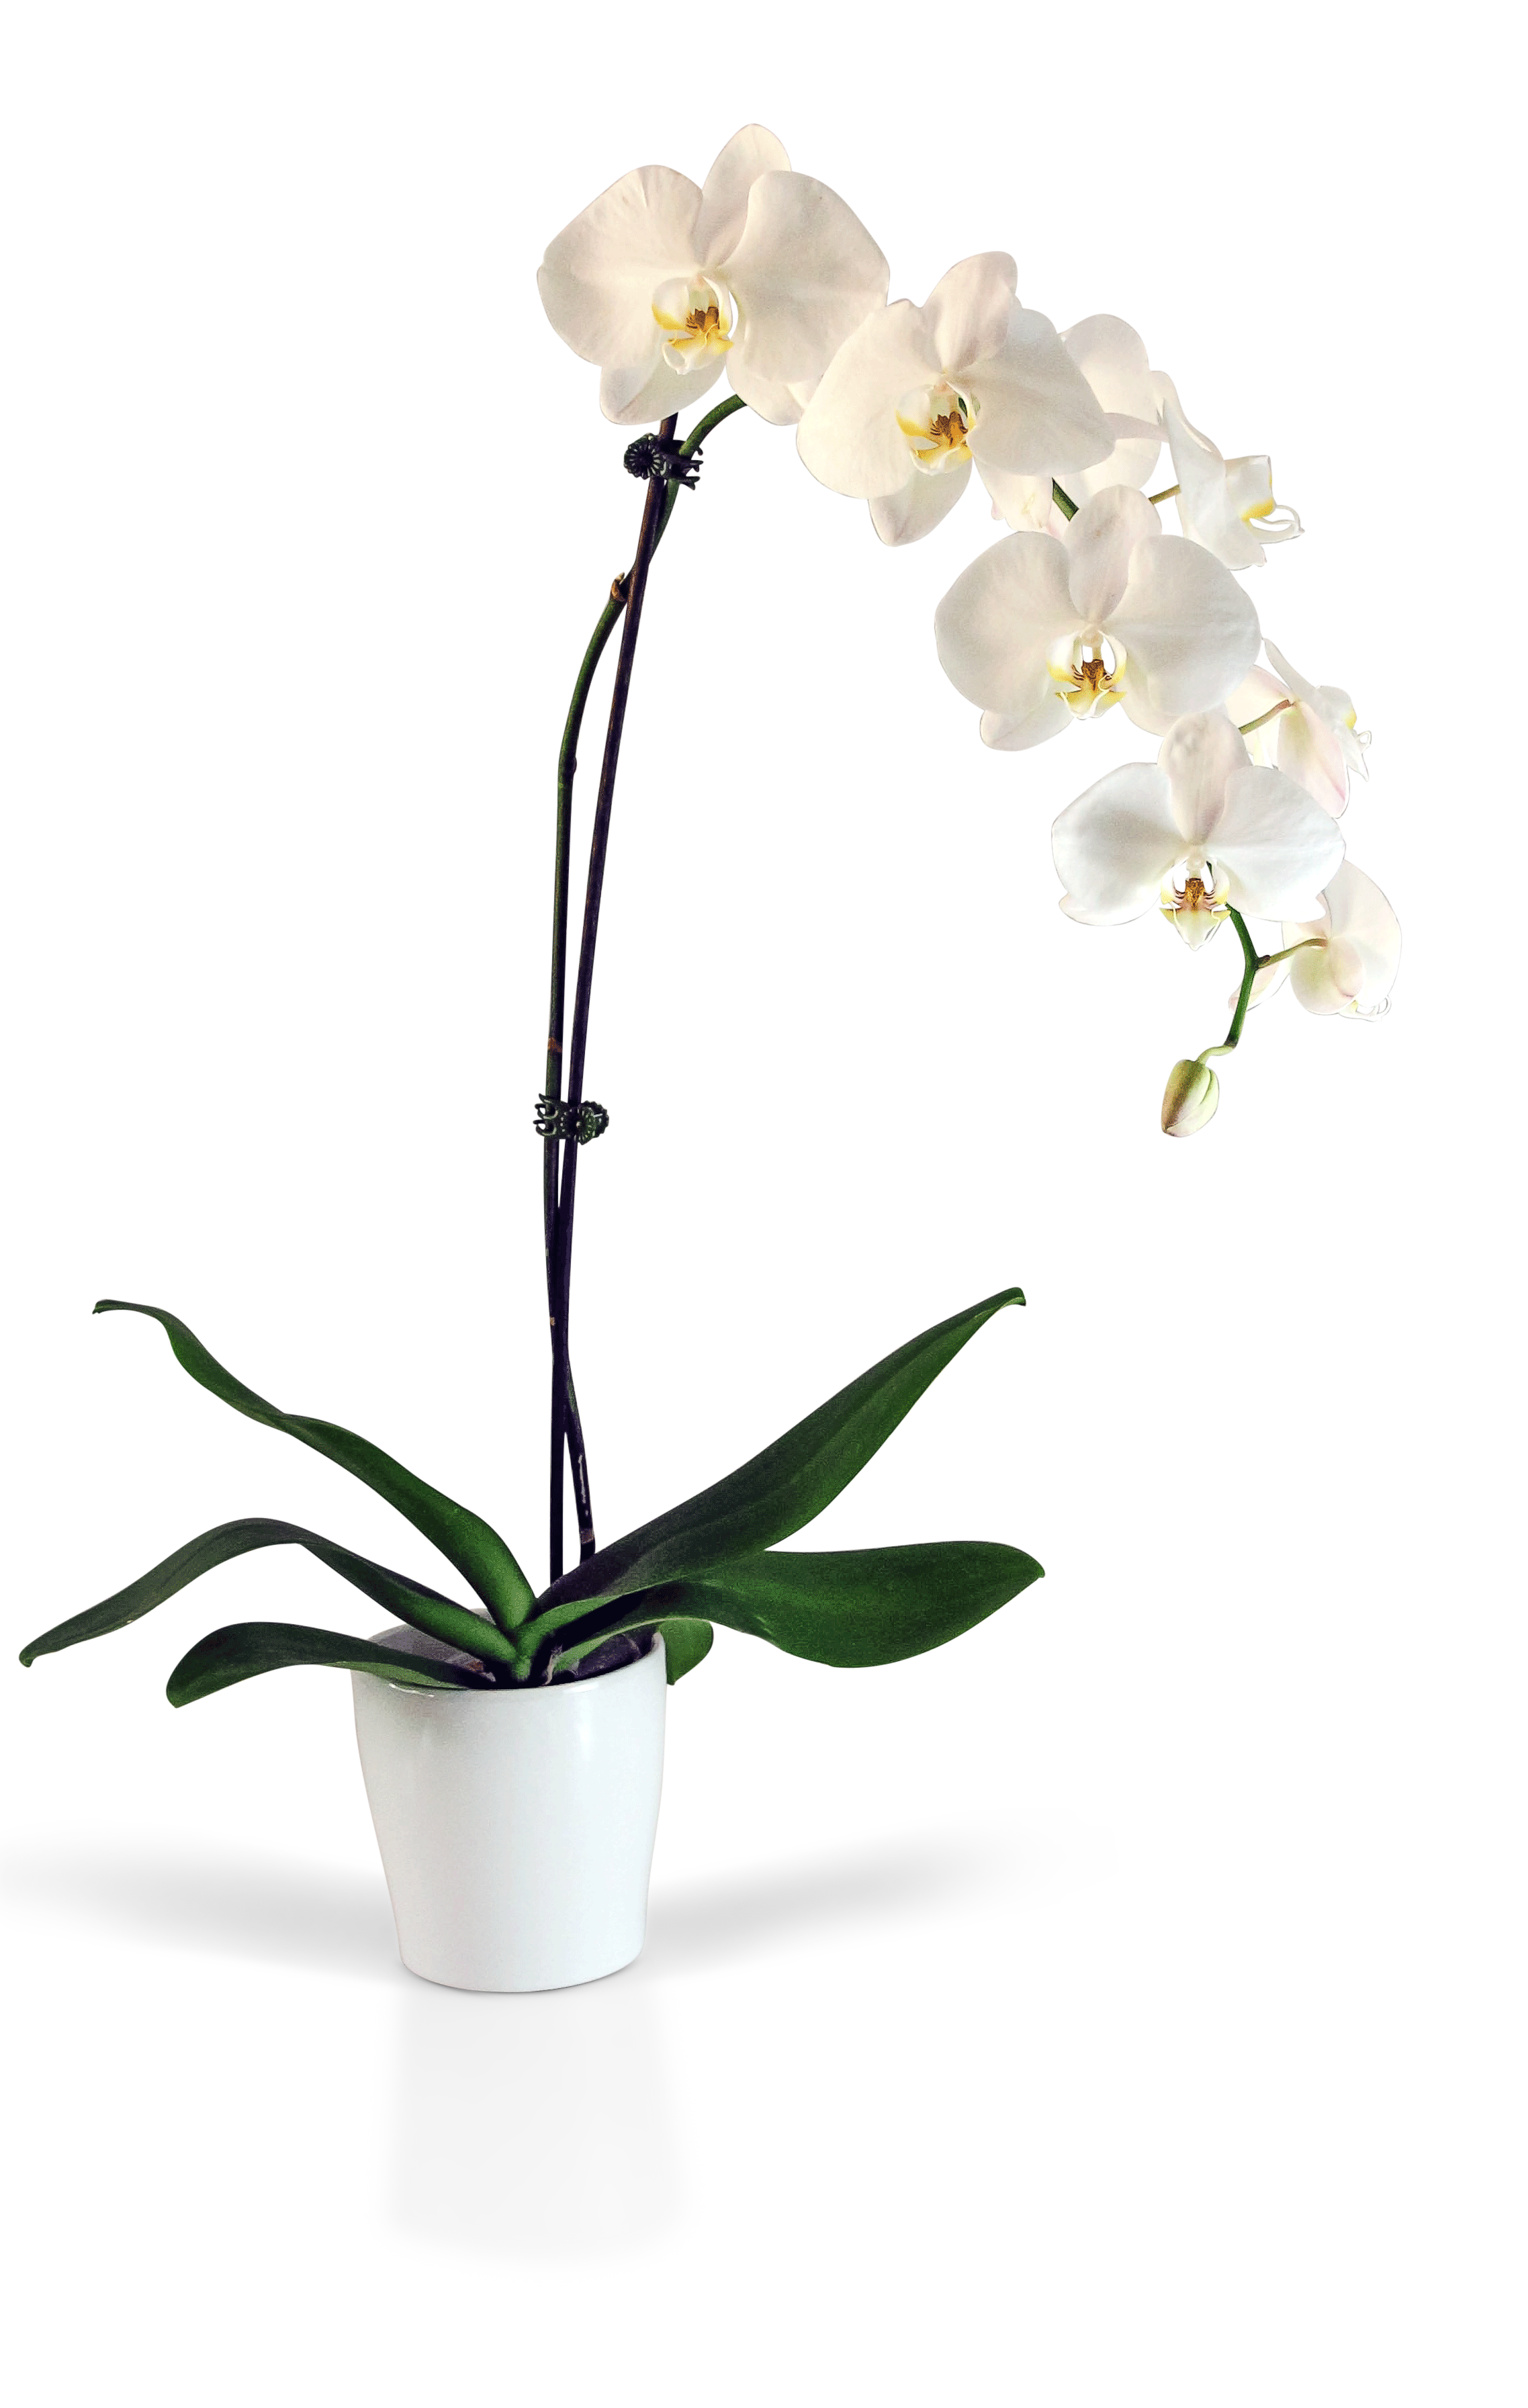 282 & Potted Phaleanopsis Orchid